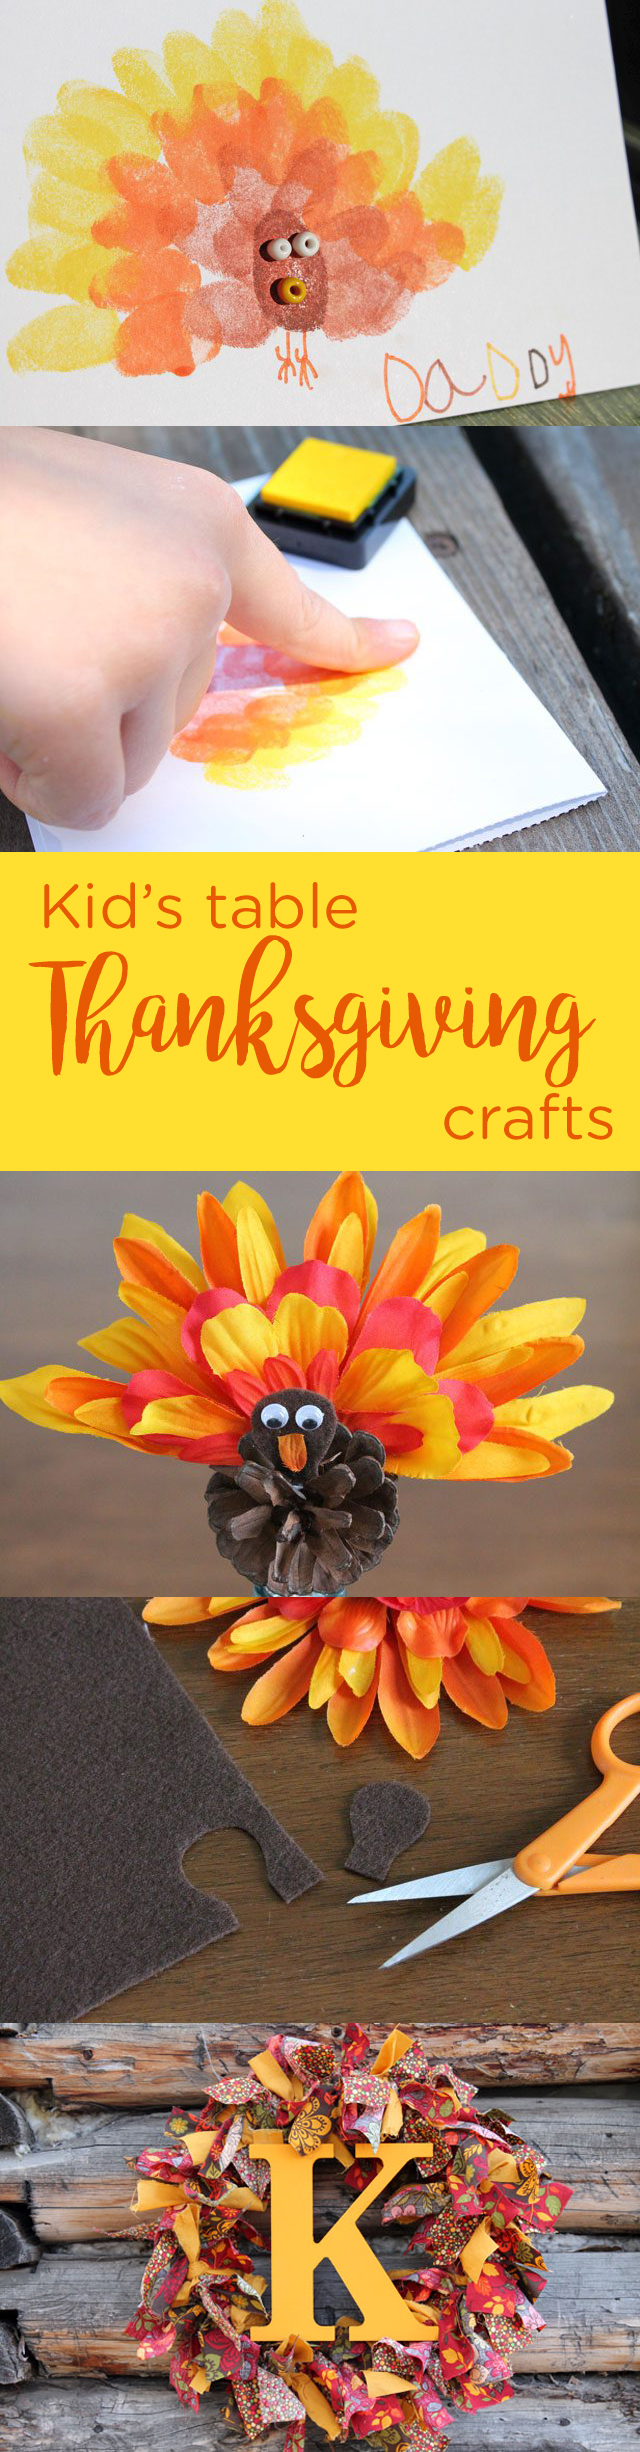 kids-table-thanksgiving-crafts